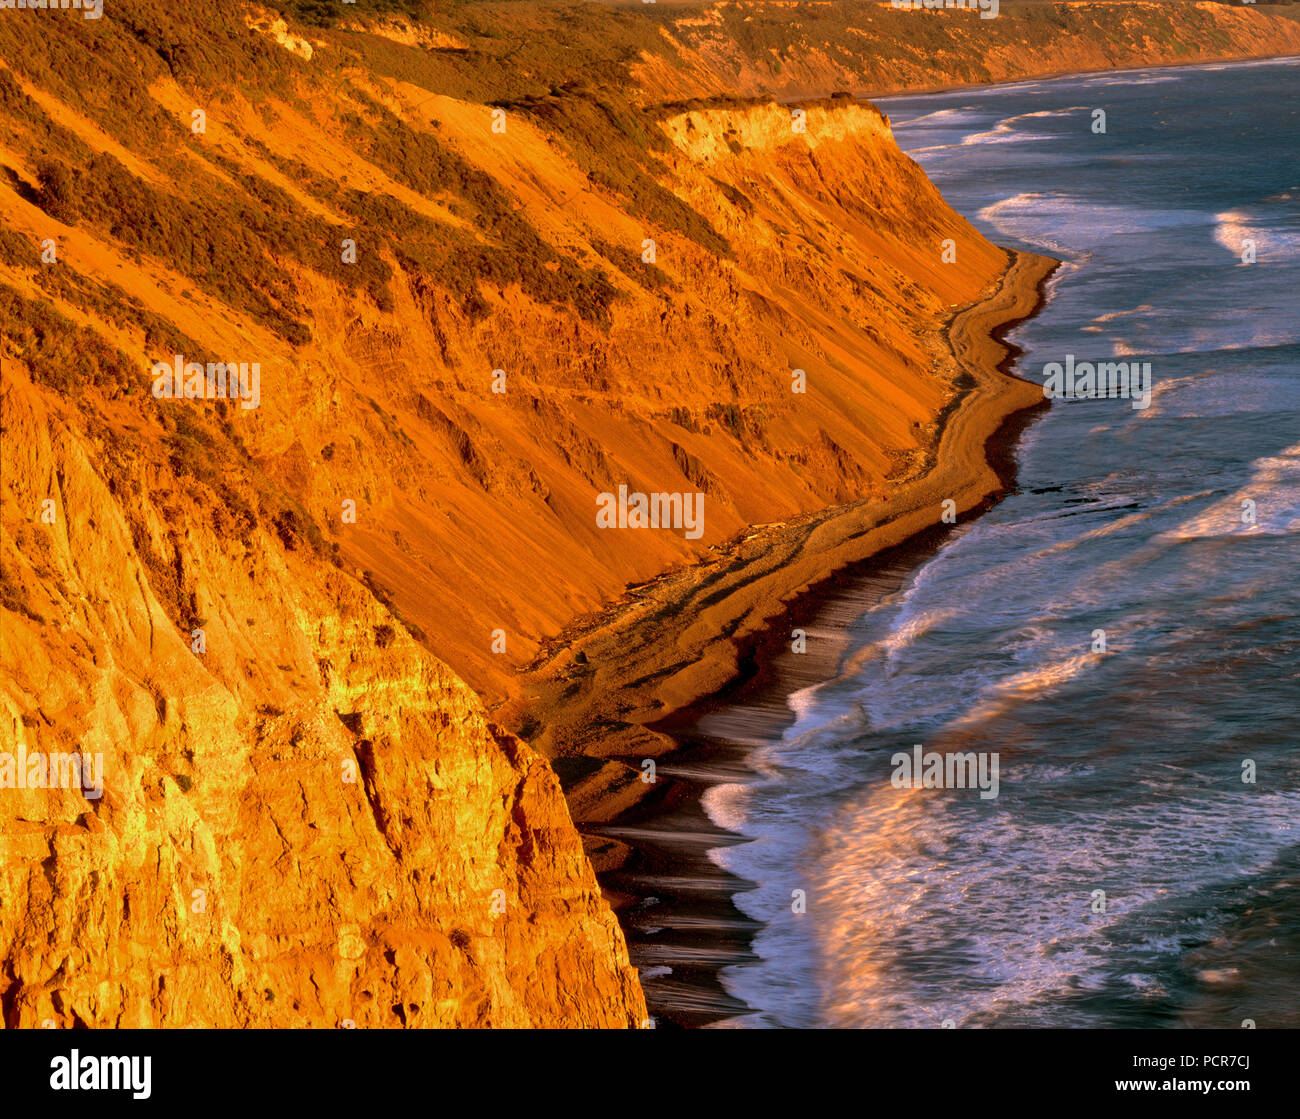 Cliffs, Palomarin Beach, Wildcat Beach Trail, Point Reyes National Seashore; California; Marin County California - Stock Image